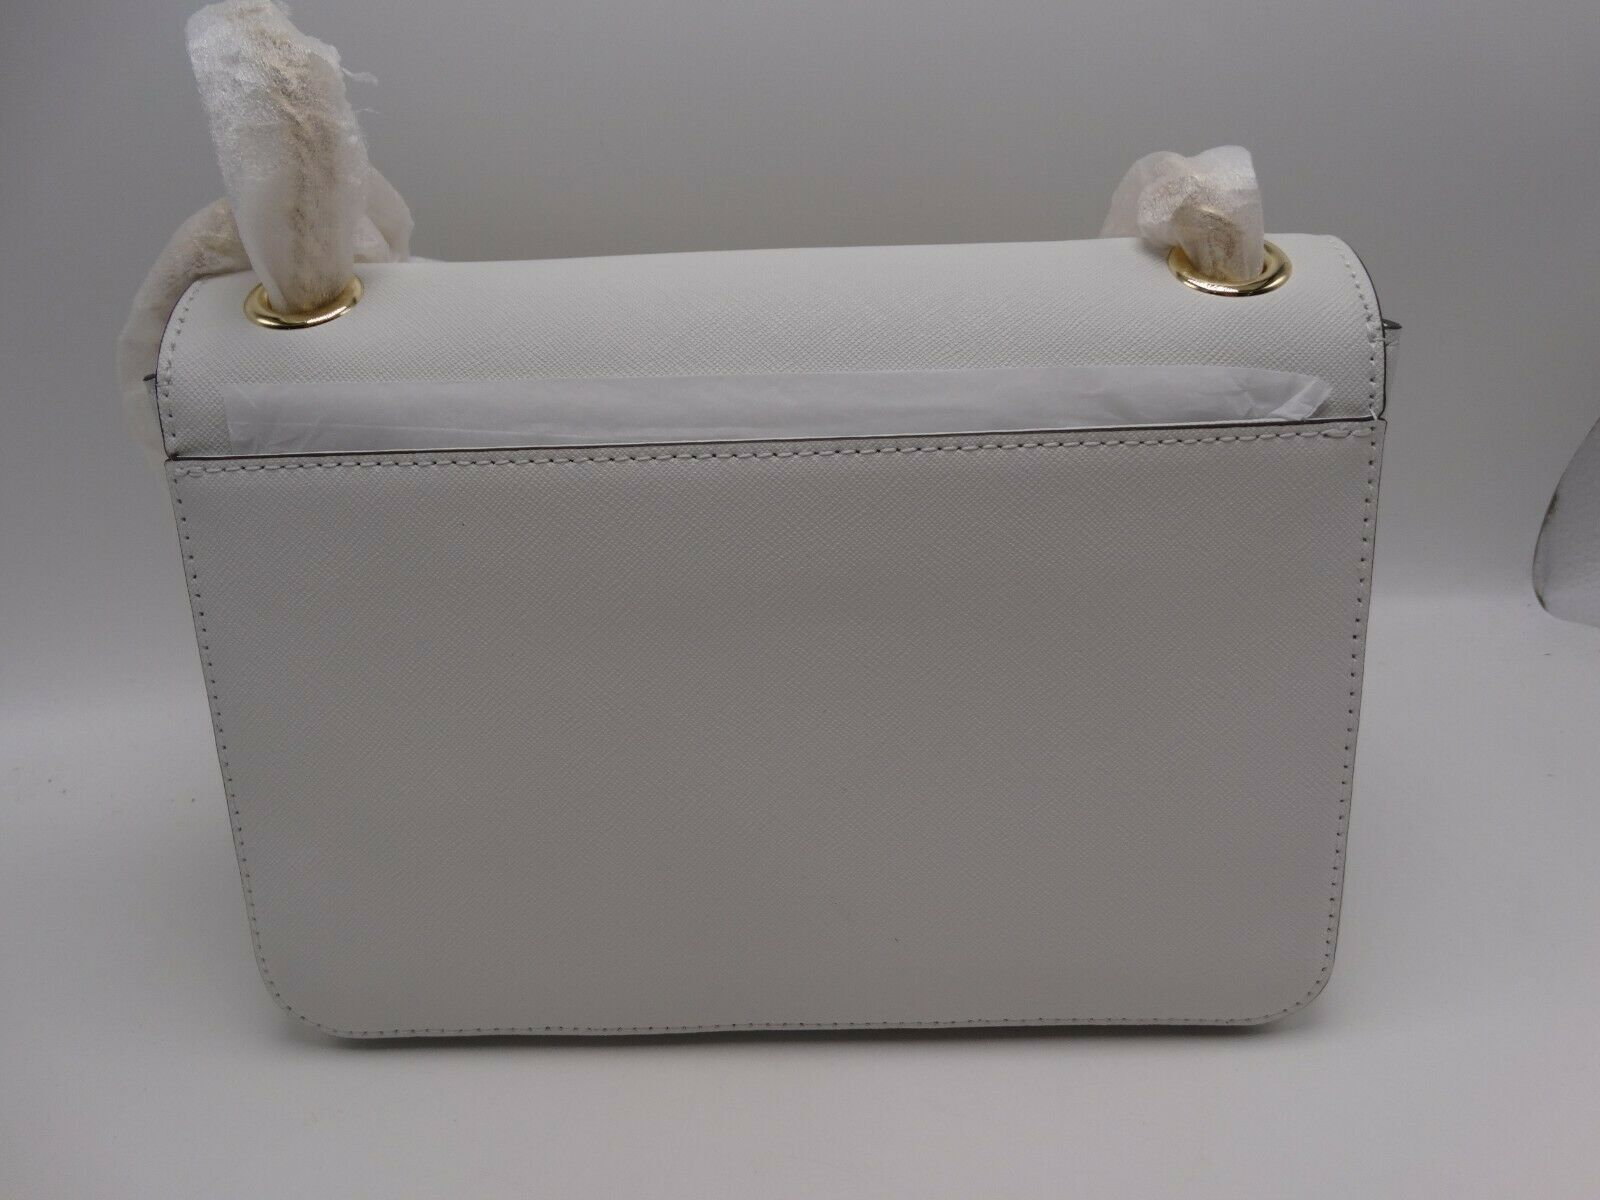 d84f5270992322 Michael Kors Tina Optic White Gold Stud Shoulder Bag (Retail 398) New With  Tag